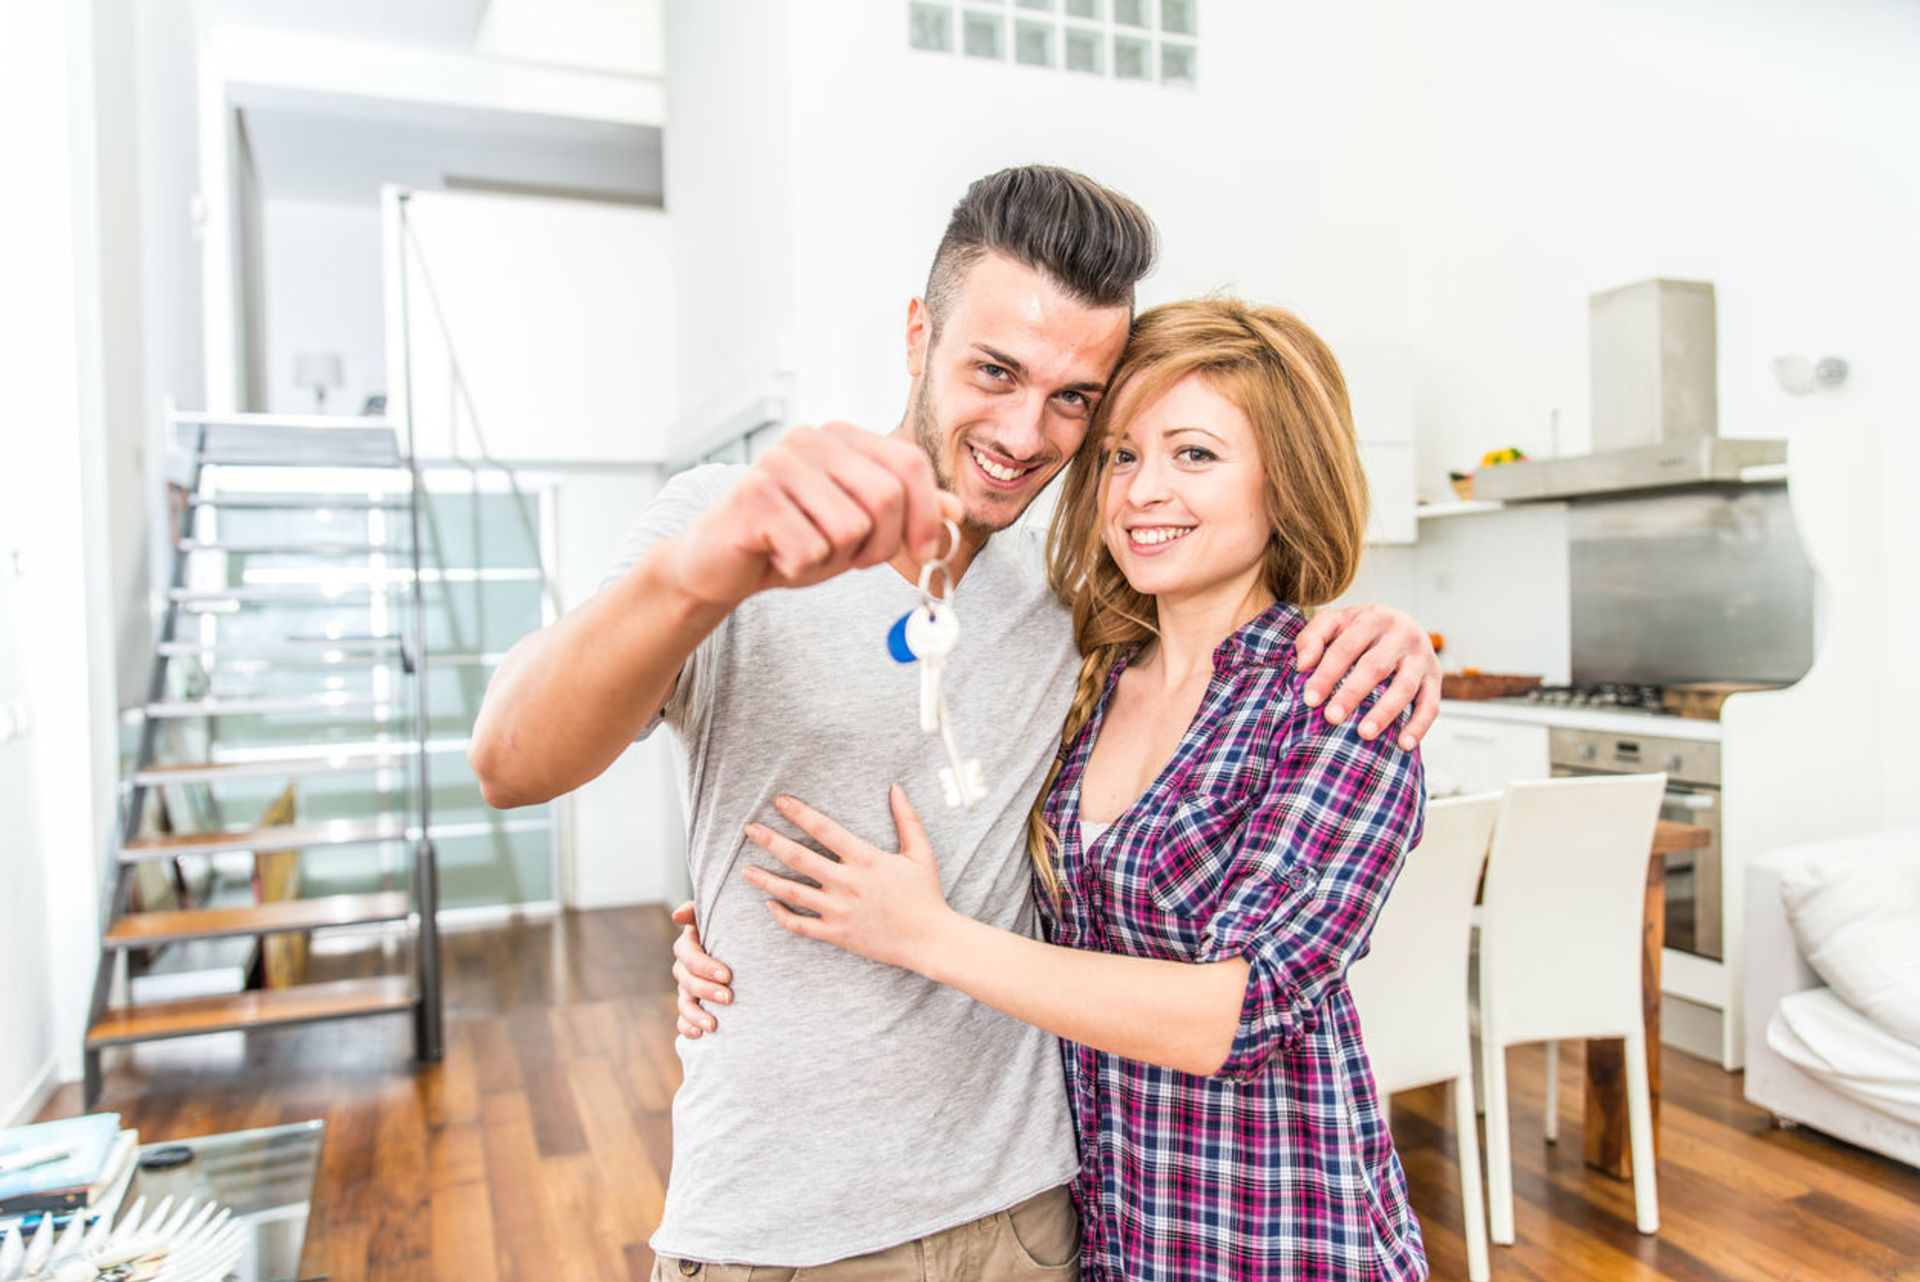 Millennials Are Increasing the Demand for Condominiums